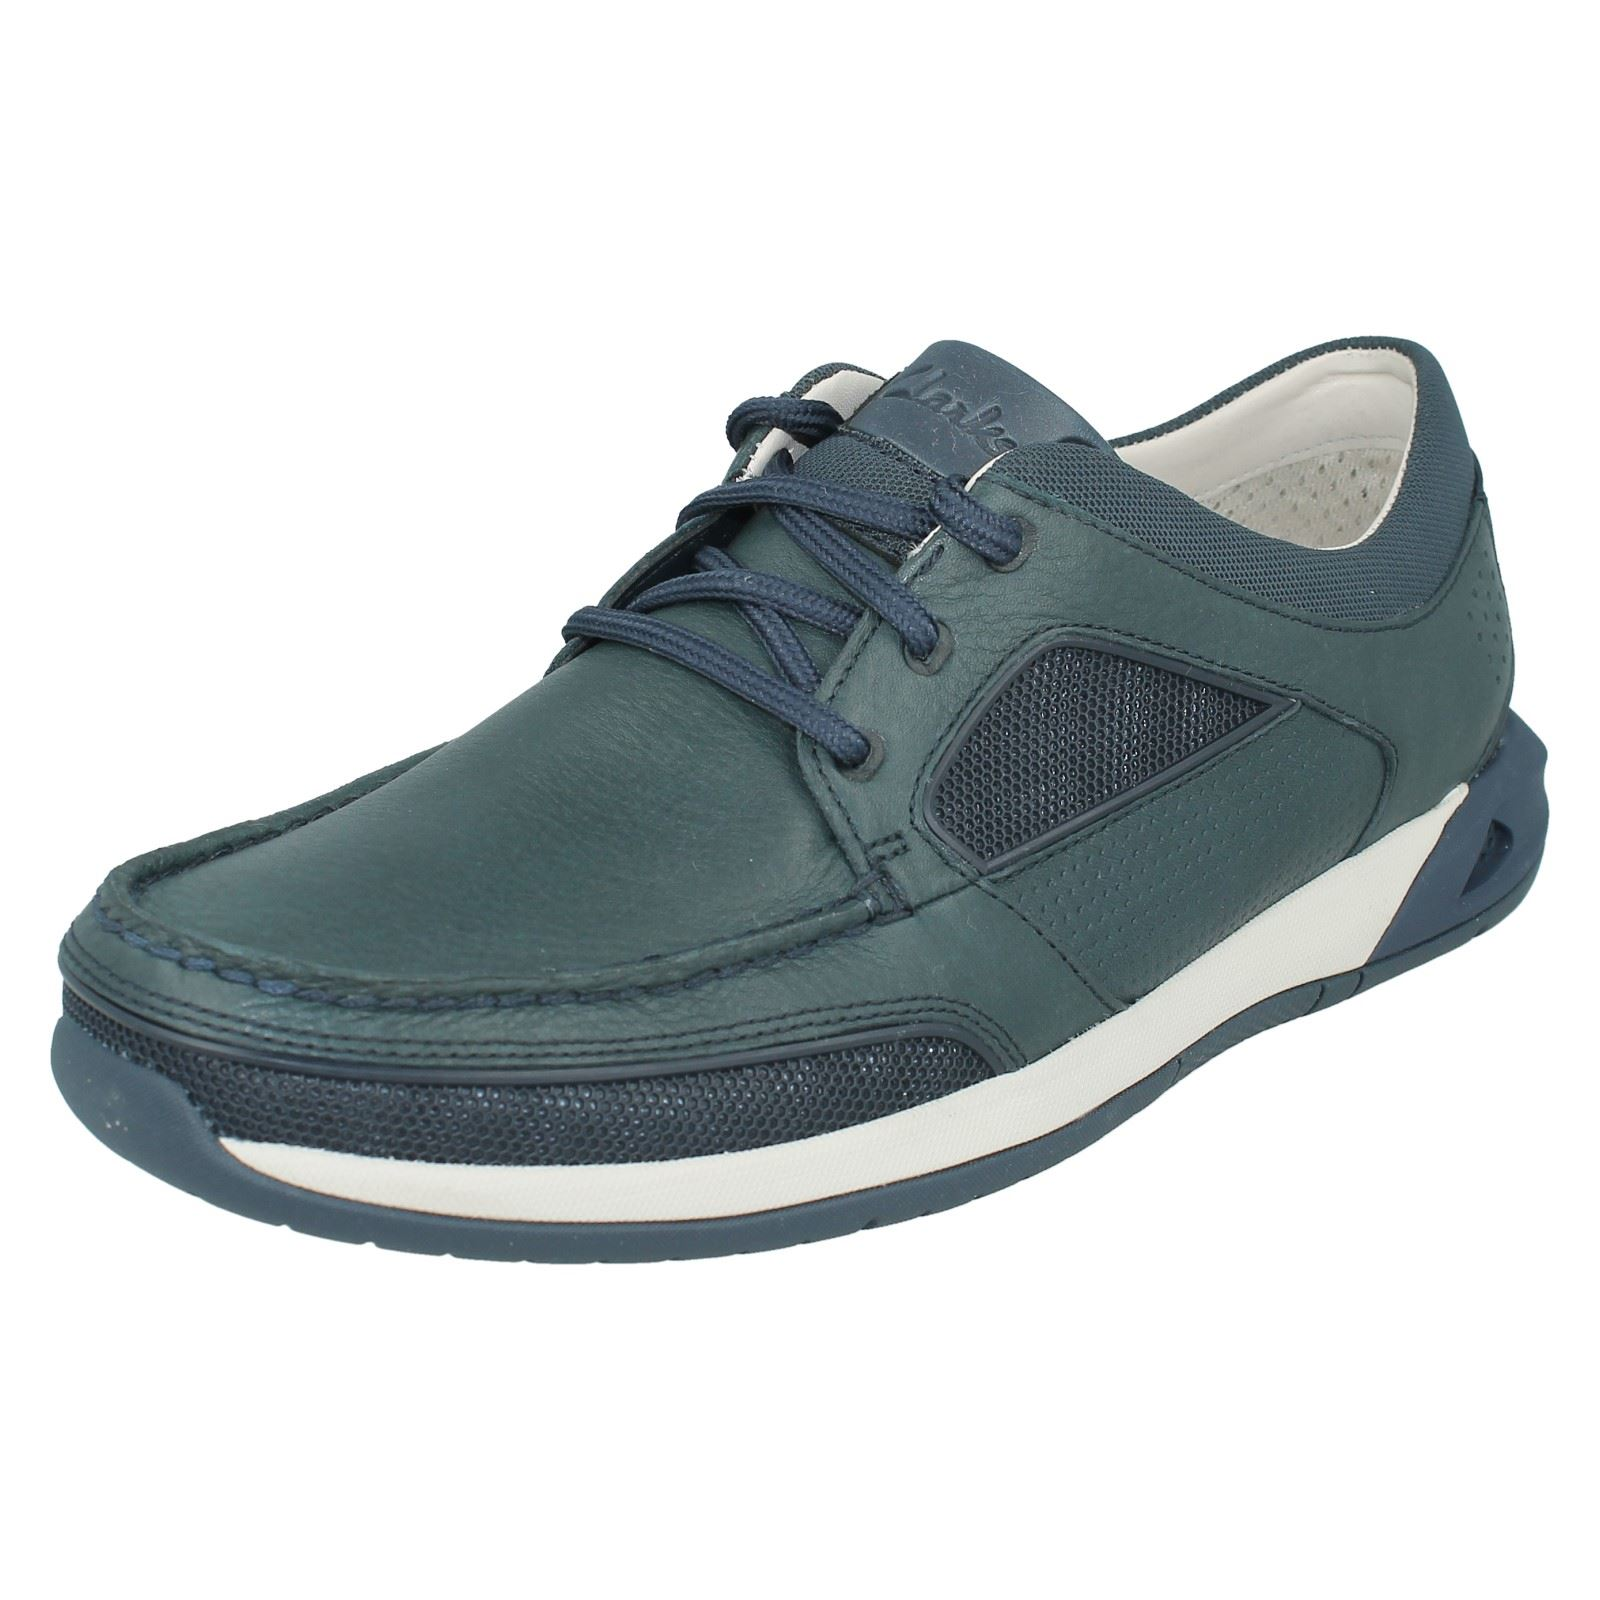 Men's Clarks Casual Lace Up Boat Style Shoes Ormand Sail